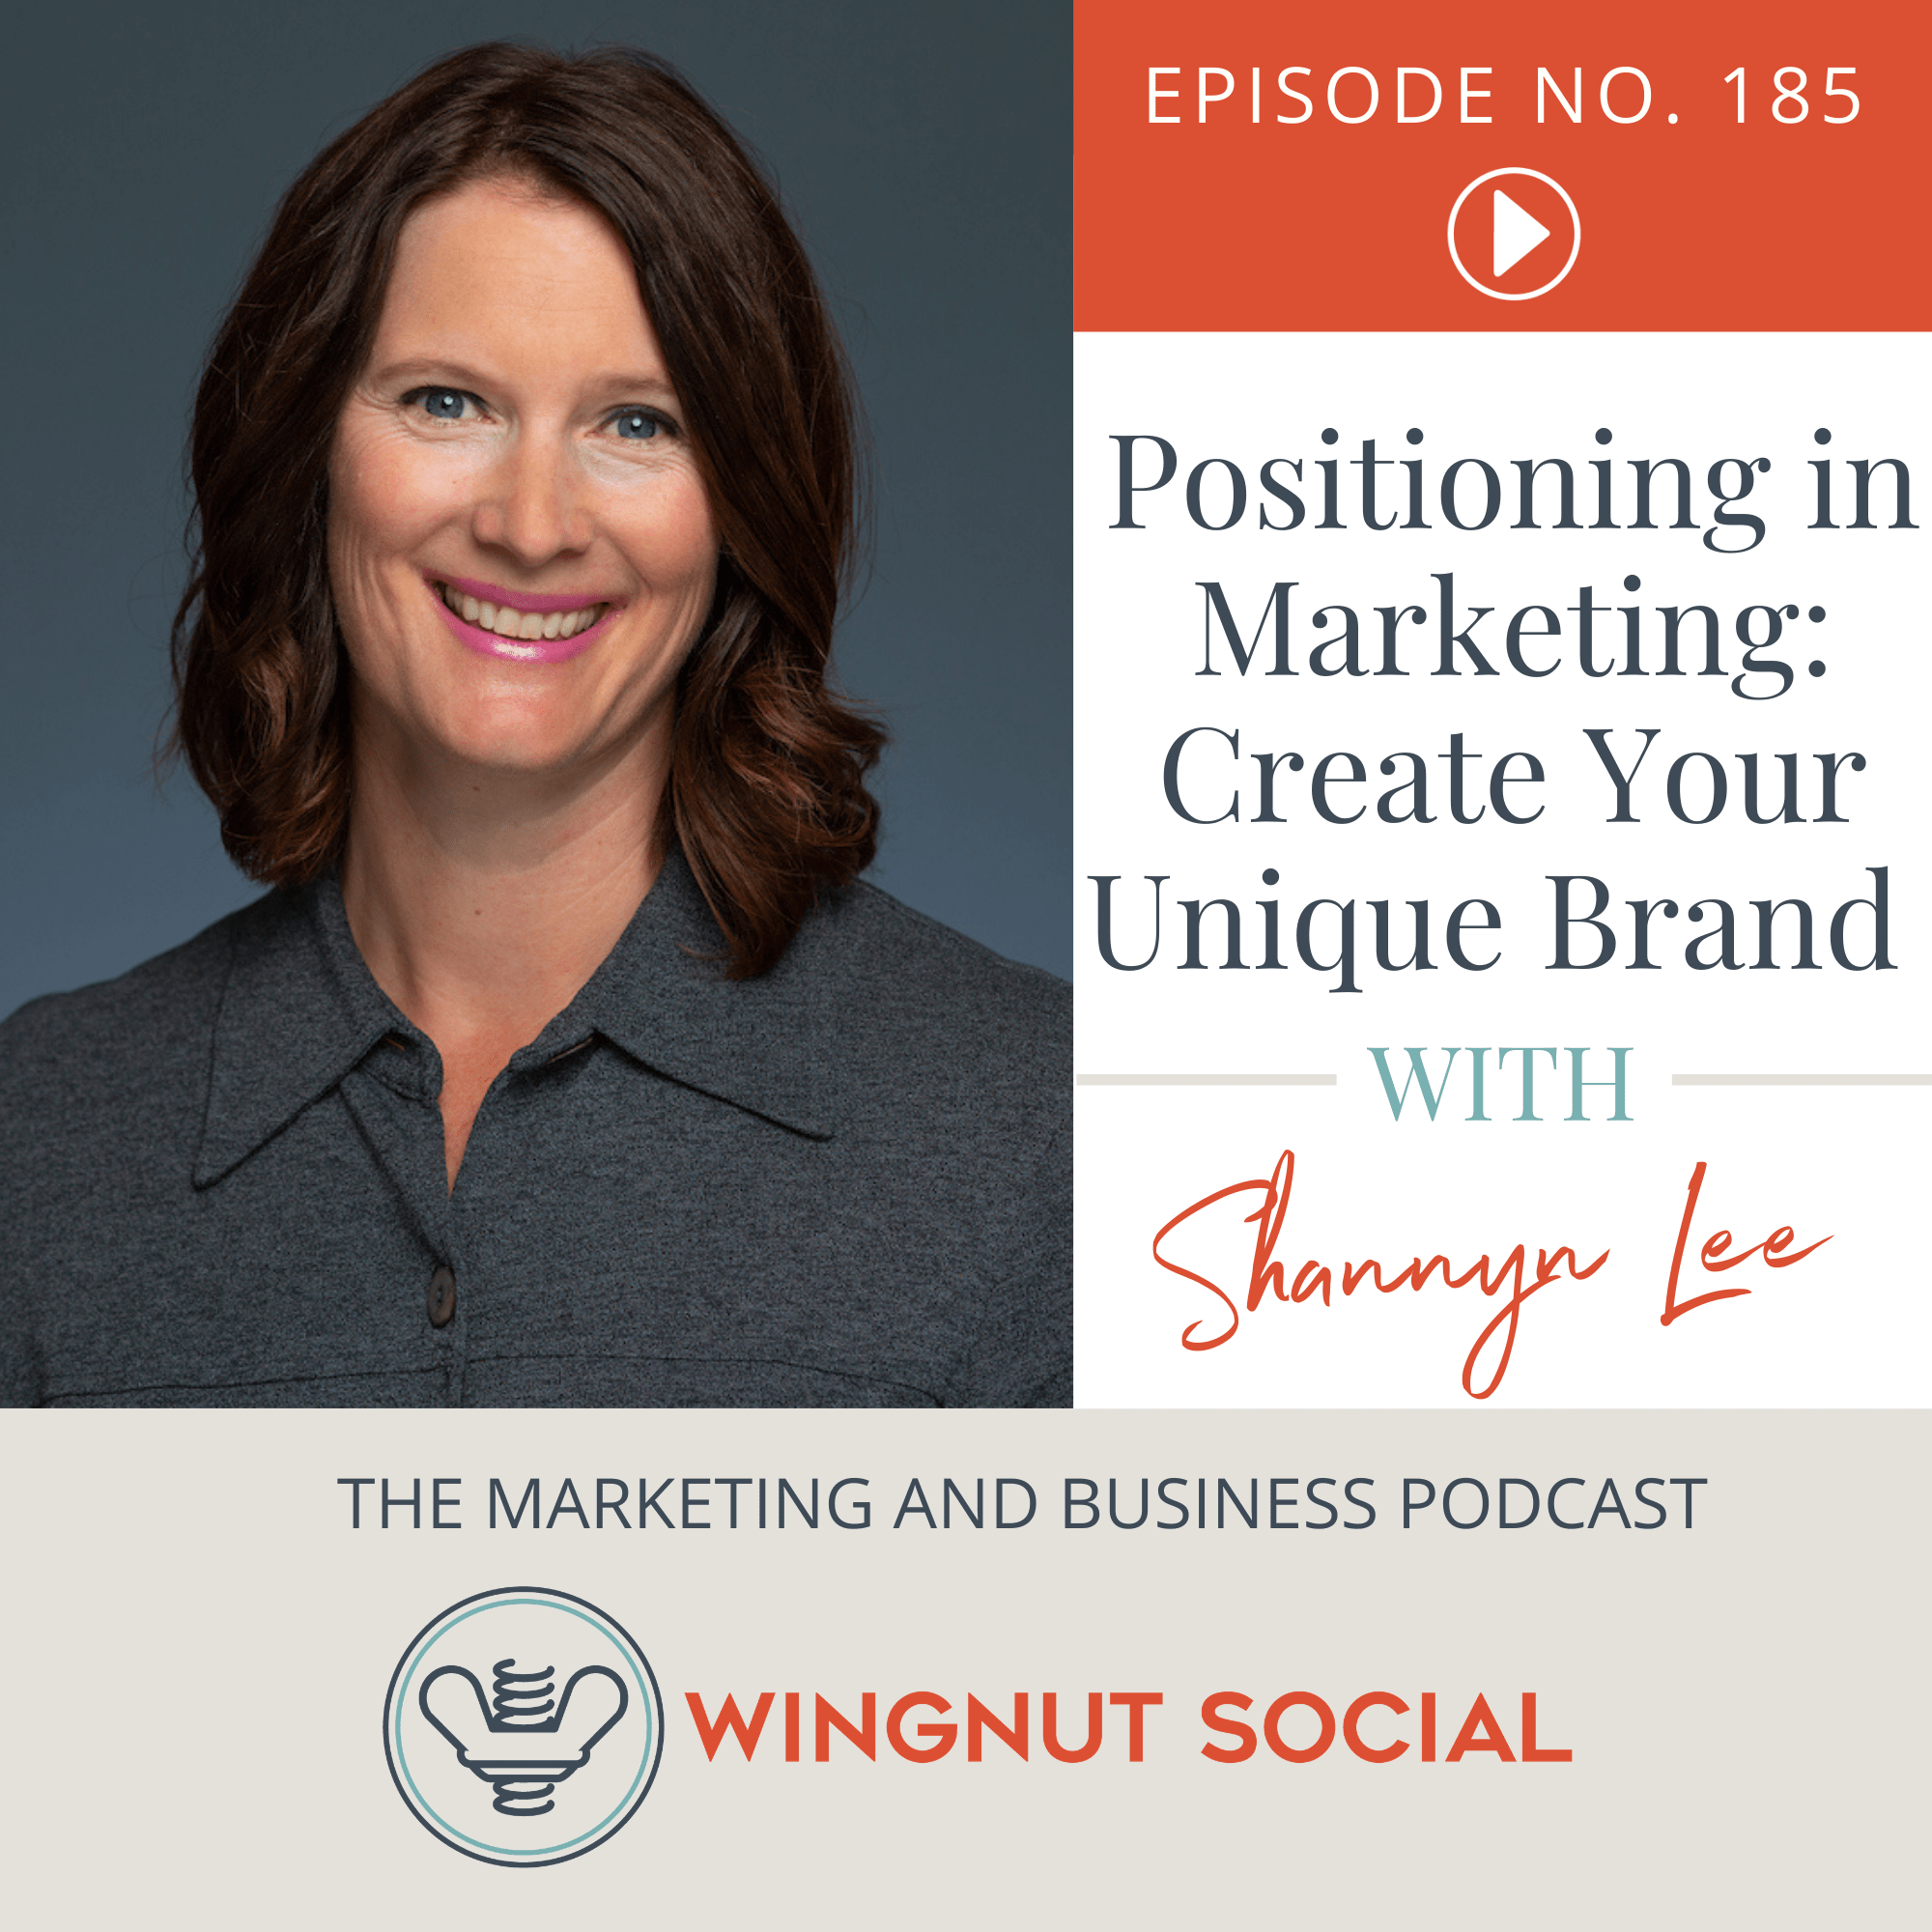 Positioning in Marketing: Create Your Unique Brand with Shannyn Lee - Episode 185